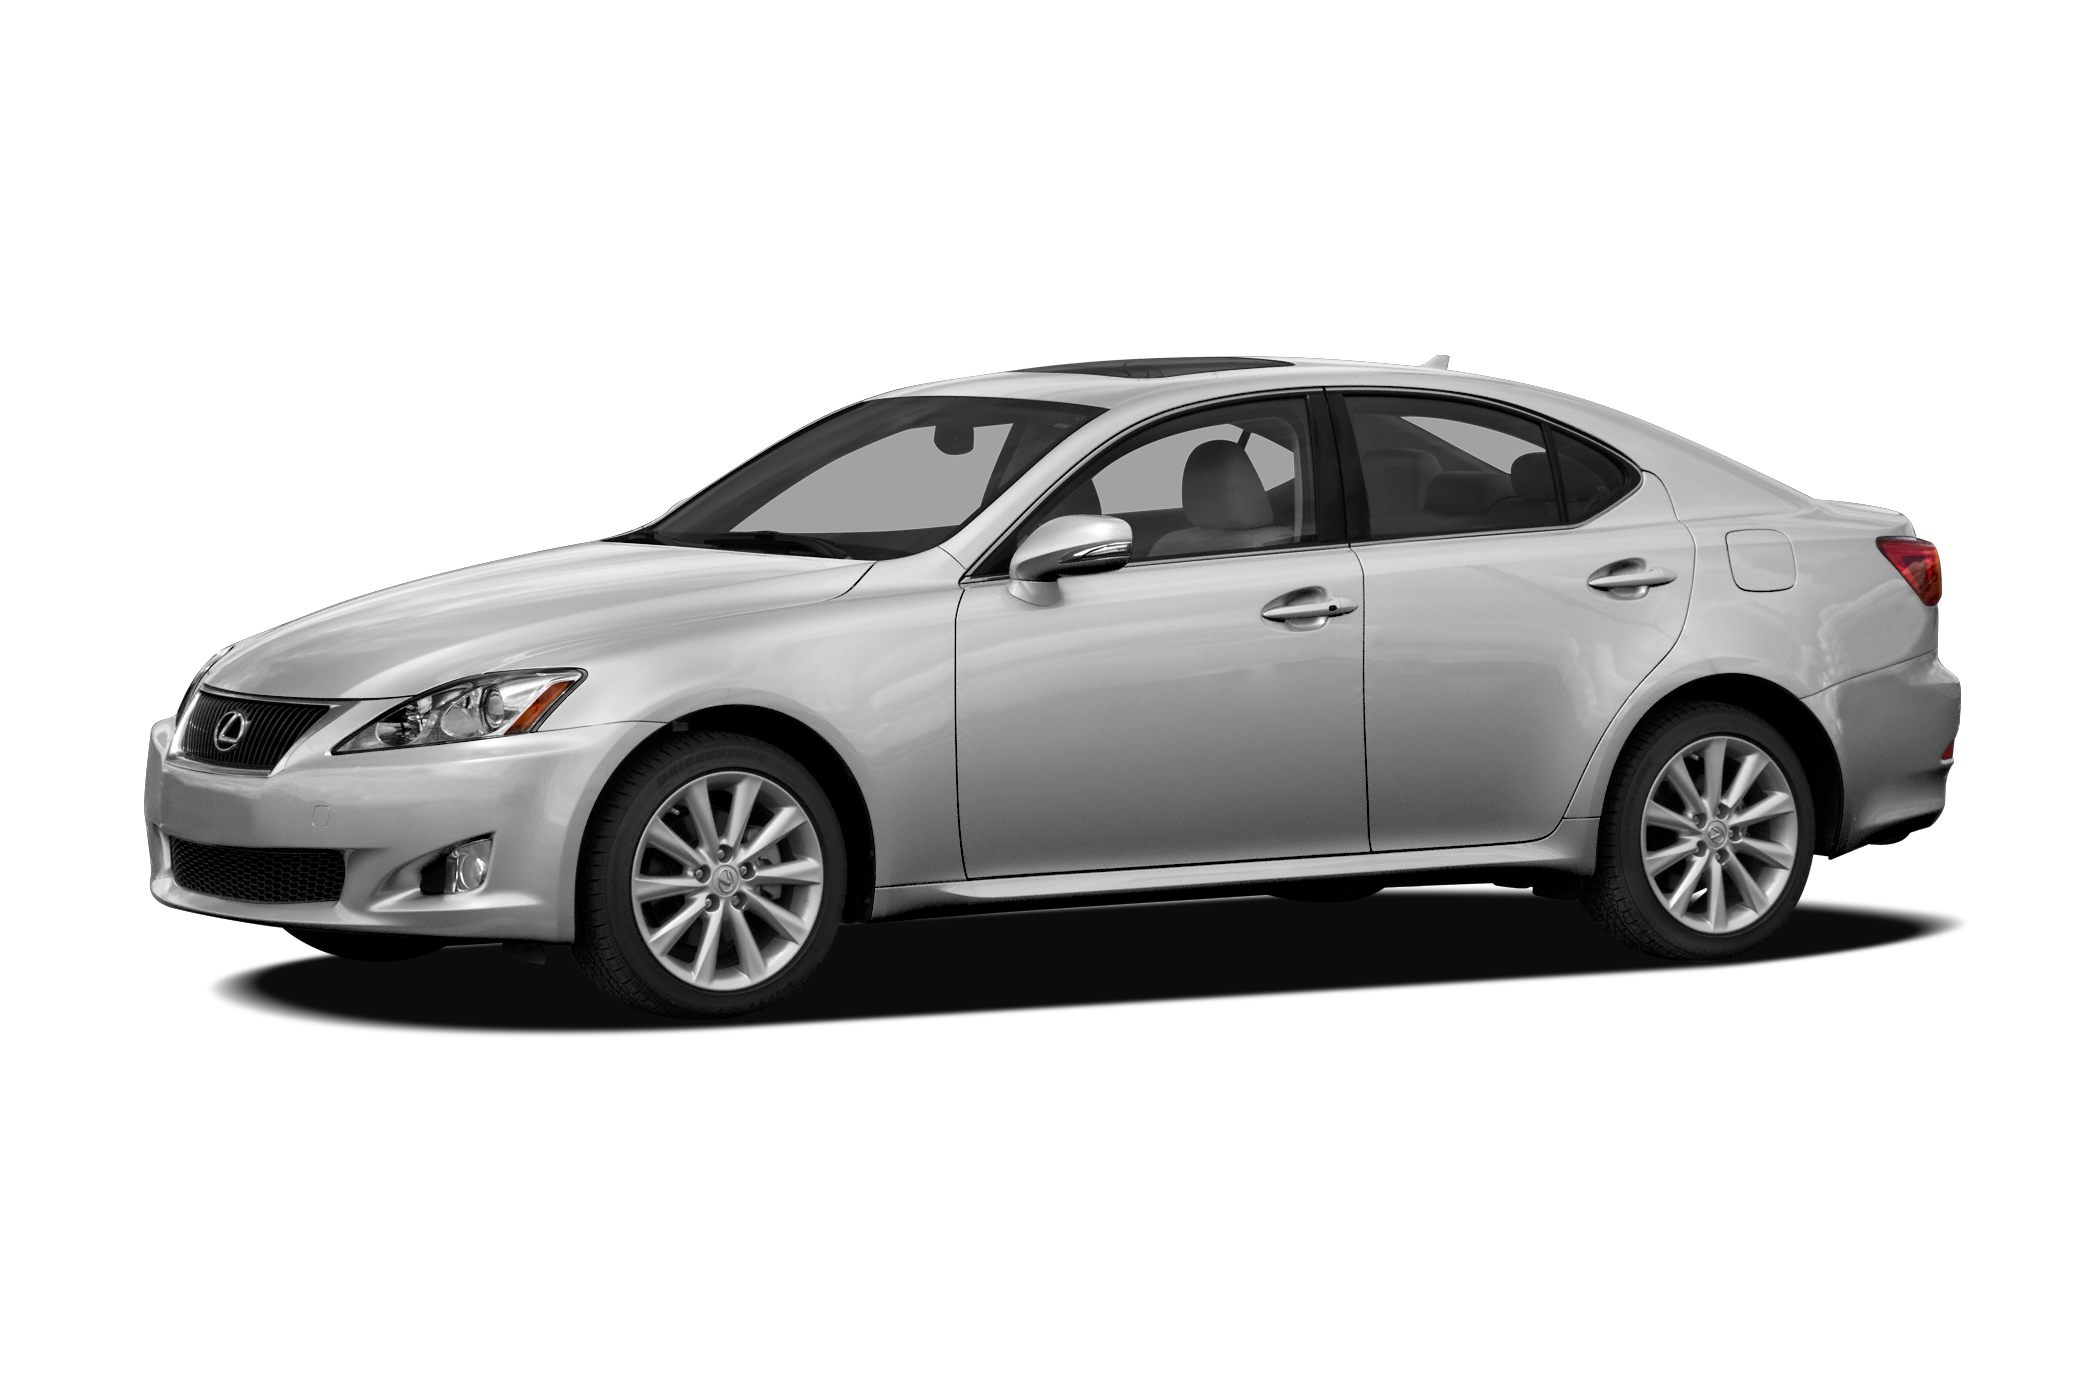 2012 Lexus IS 250 Base PREMIUM PLUS PKG1 OWNERCARFAX CERTIFIEDAWD READY FOR ANY WEATHERF